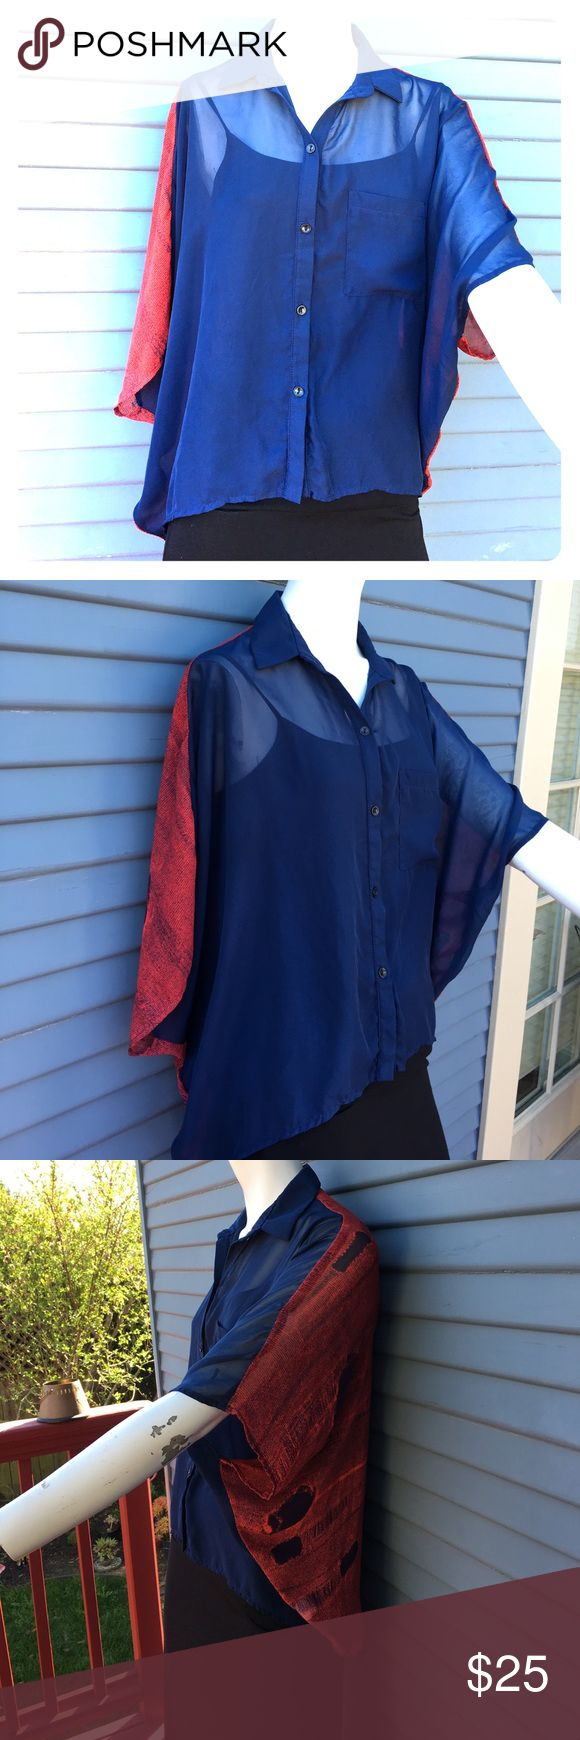 ❤Beautiful baggy shirt by Selena size small💙 Beautiful blue and red shirt size small by Selena and in great condition Tops Blouses